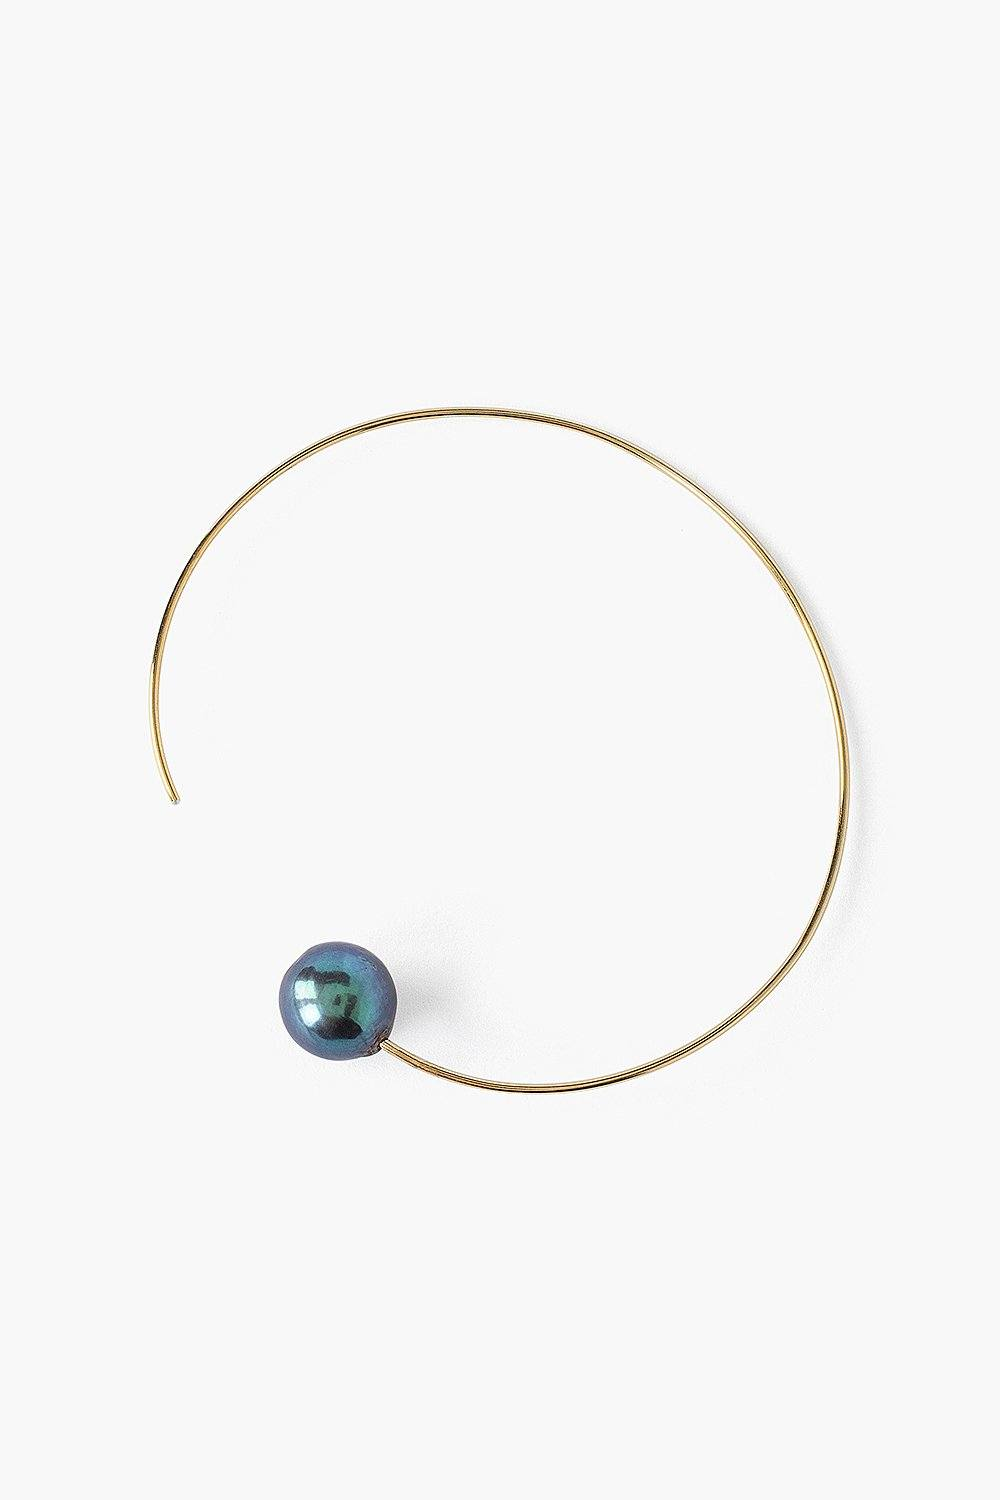 Peacock Blue Pearl and Gold Halo Hoop Earrings